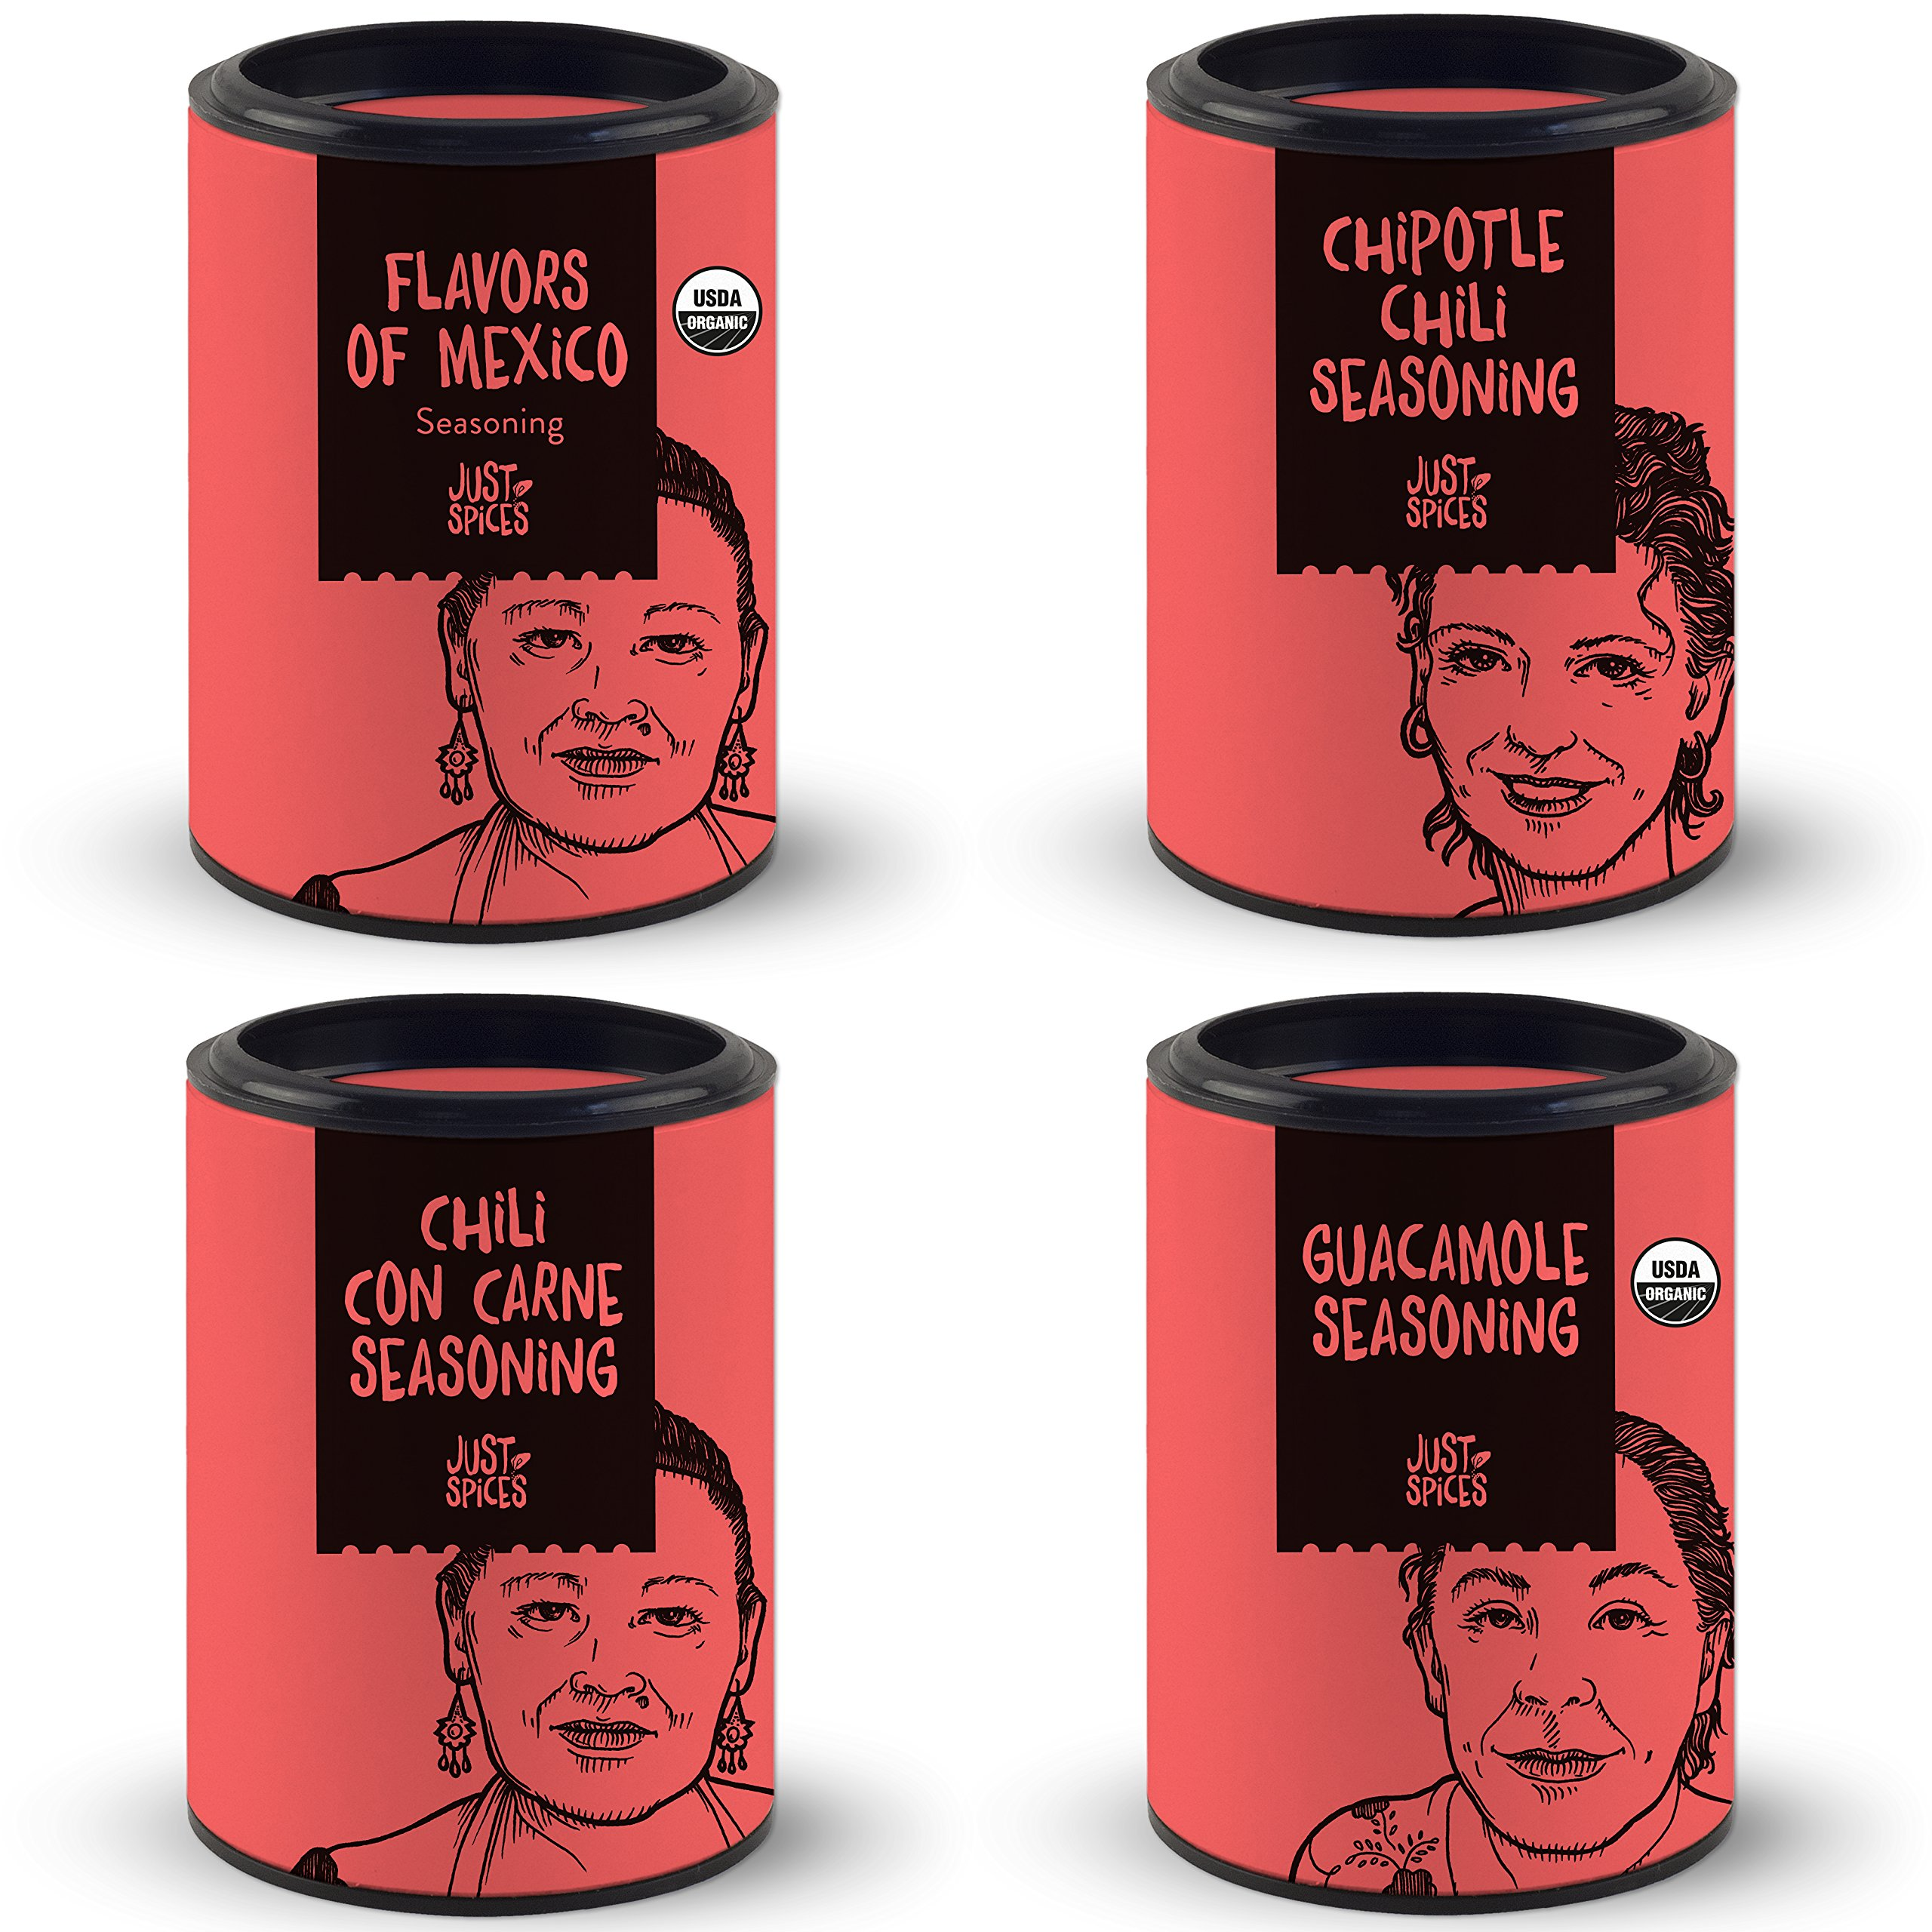 Mexican Spices Gift Set | Variety Box of 4 Essential Seasoning Blends for Cooking Mexican Food | Including Guacamole Seasoning - Chili con Carne - Chipotle - Flavors of Mexico